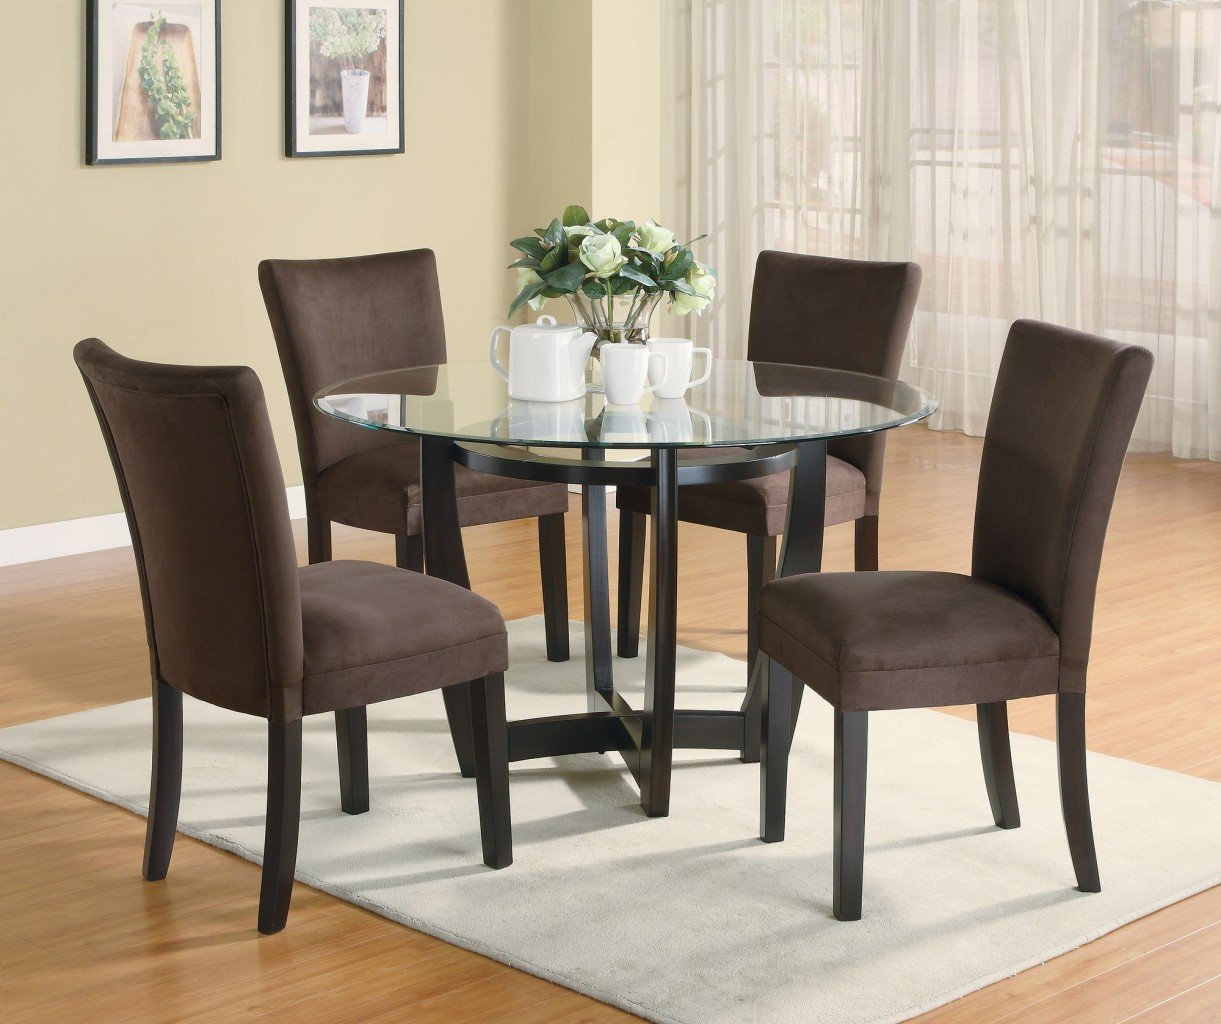 Cheap dining room table sets home furniture design for Dining room table sets